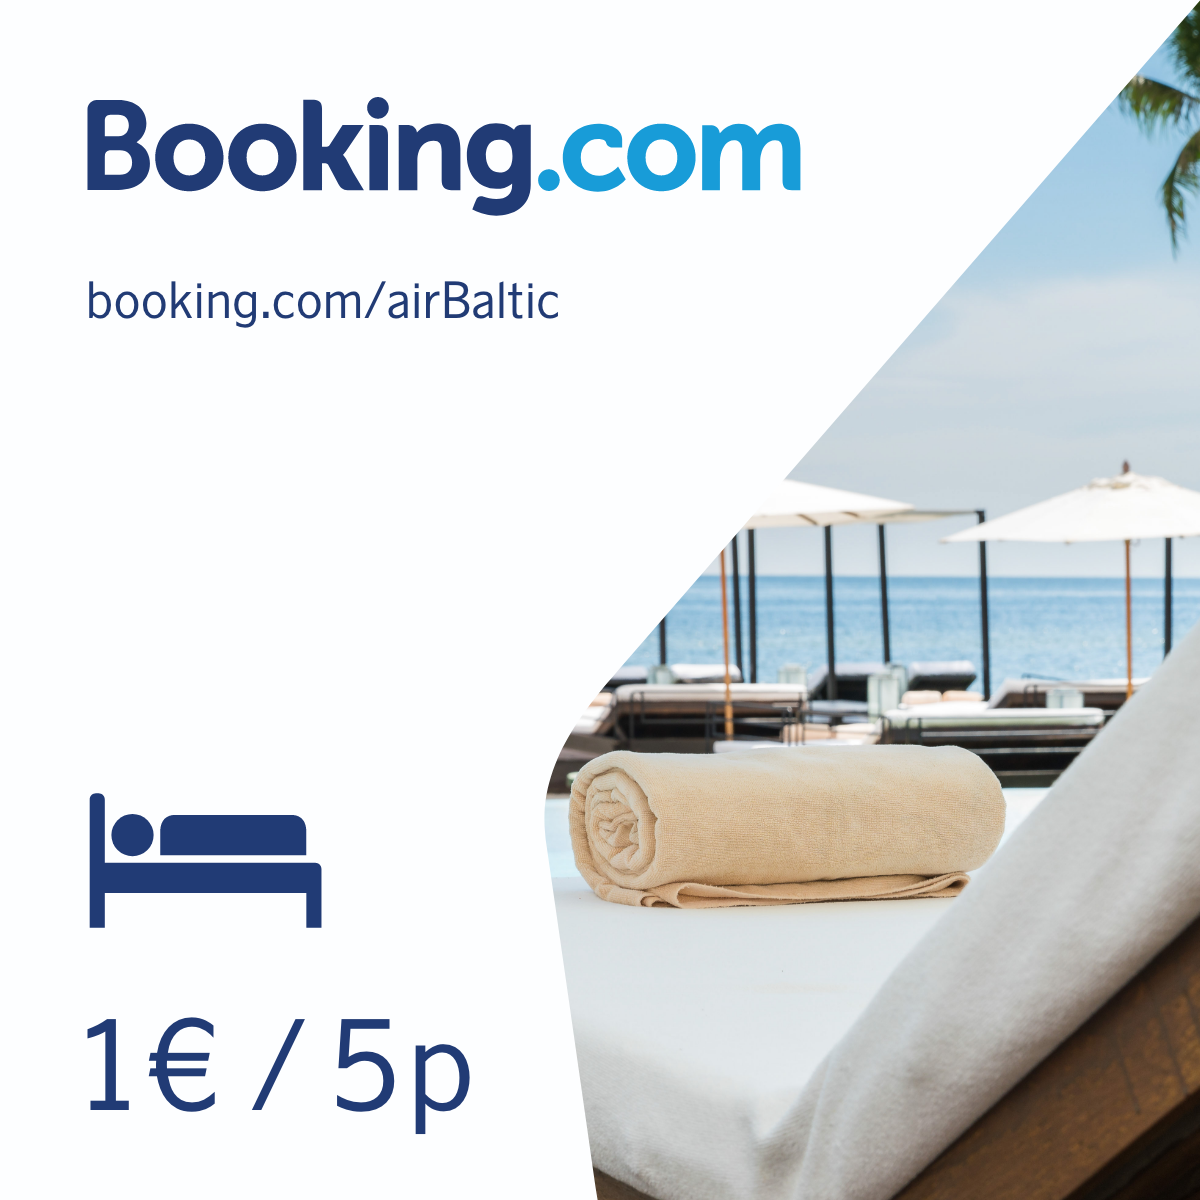 Book hotels on Booking.com/airbaltic and earn 5P/EUR! image